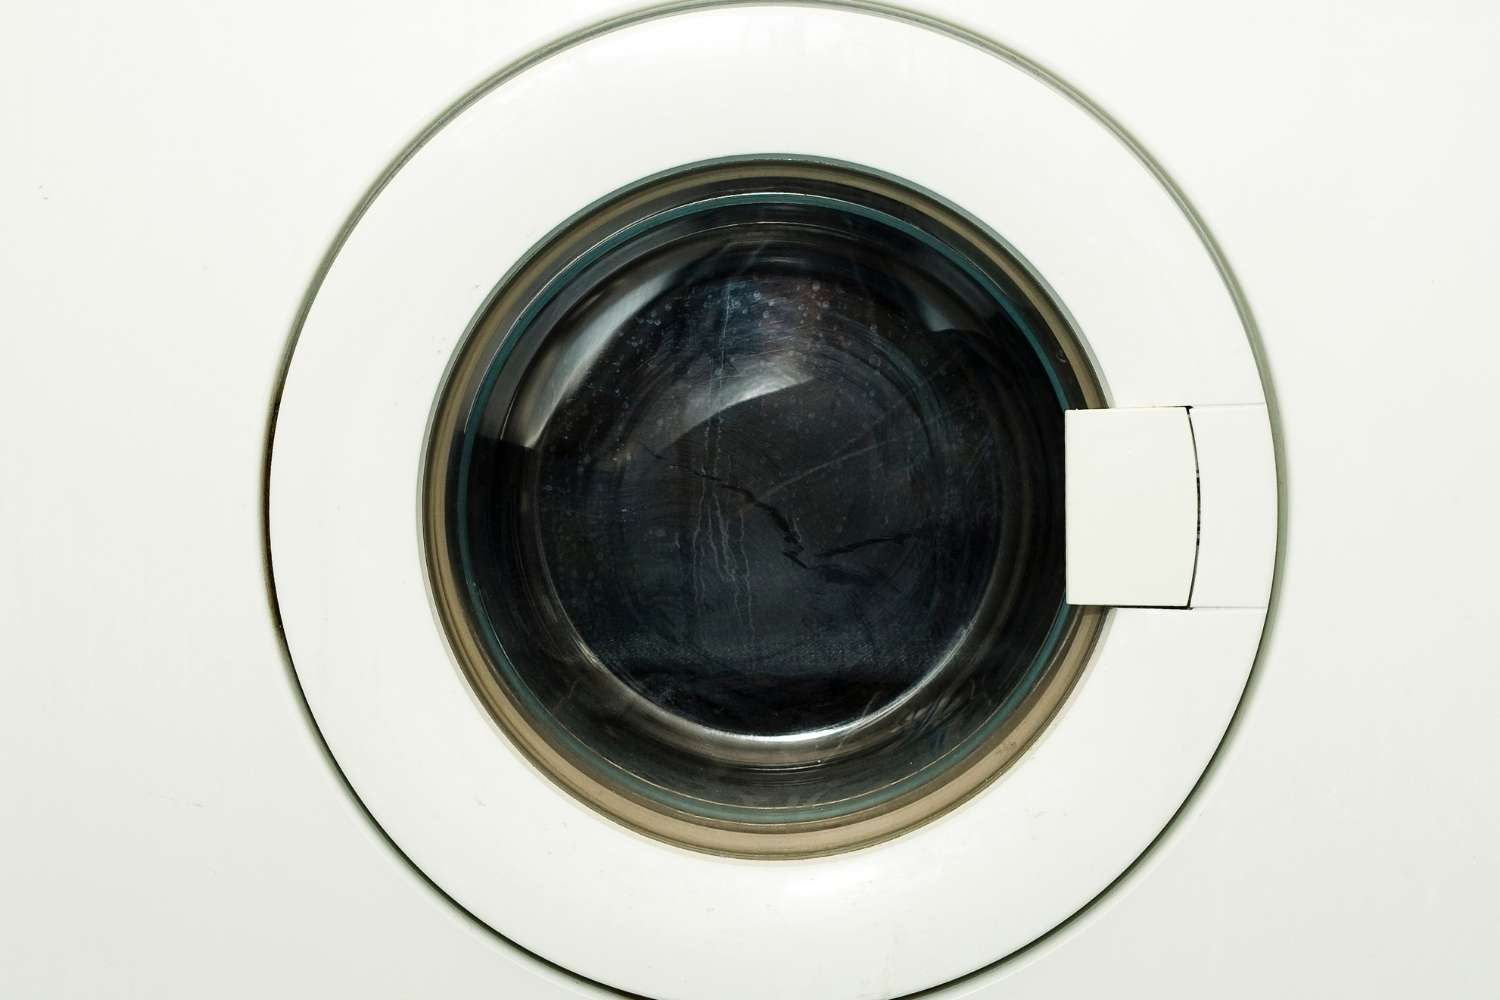 How do you bypass a washing machine door lock?